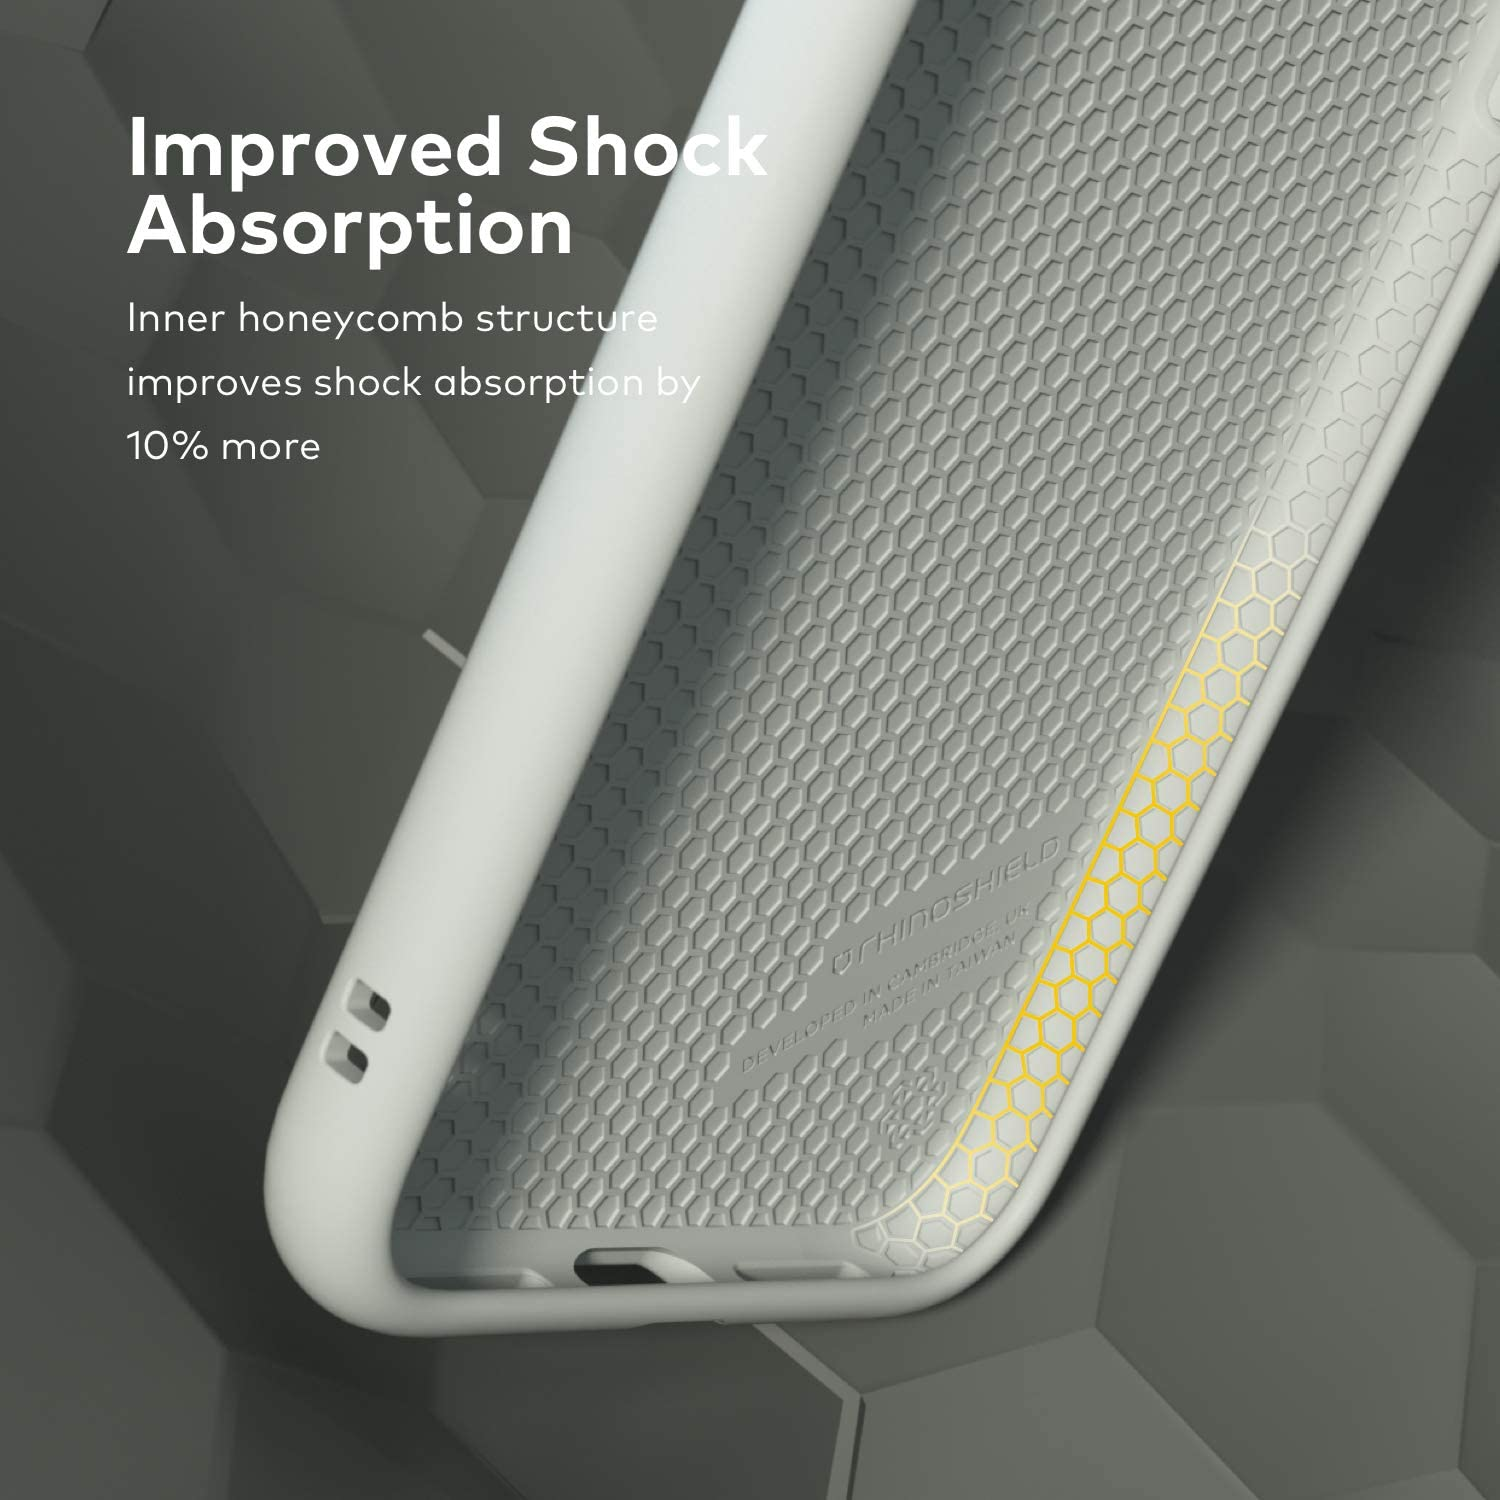 RhinoShield Case Compatible with [iPhone 11] | SolidSuit - Shock Absorbent Slim Design Protective Cover with Premium Matte Finish 3.5M / 11ft Drop Protection - Beige